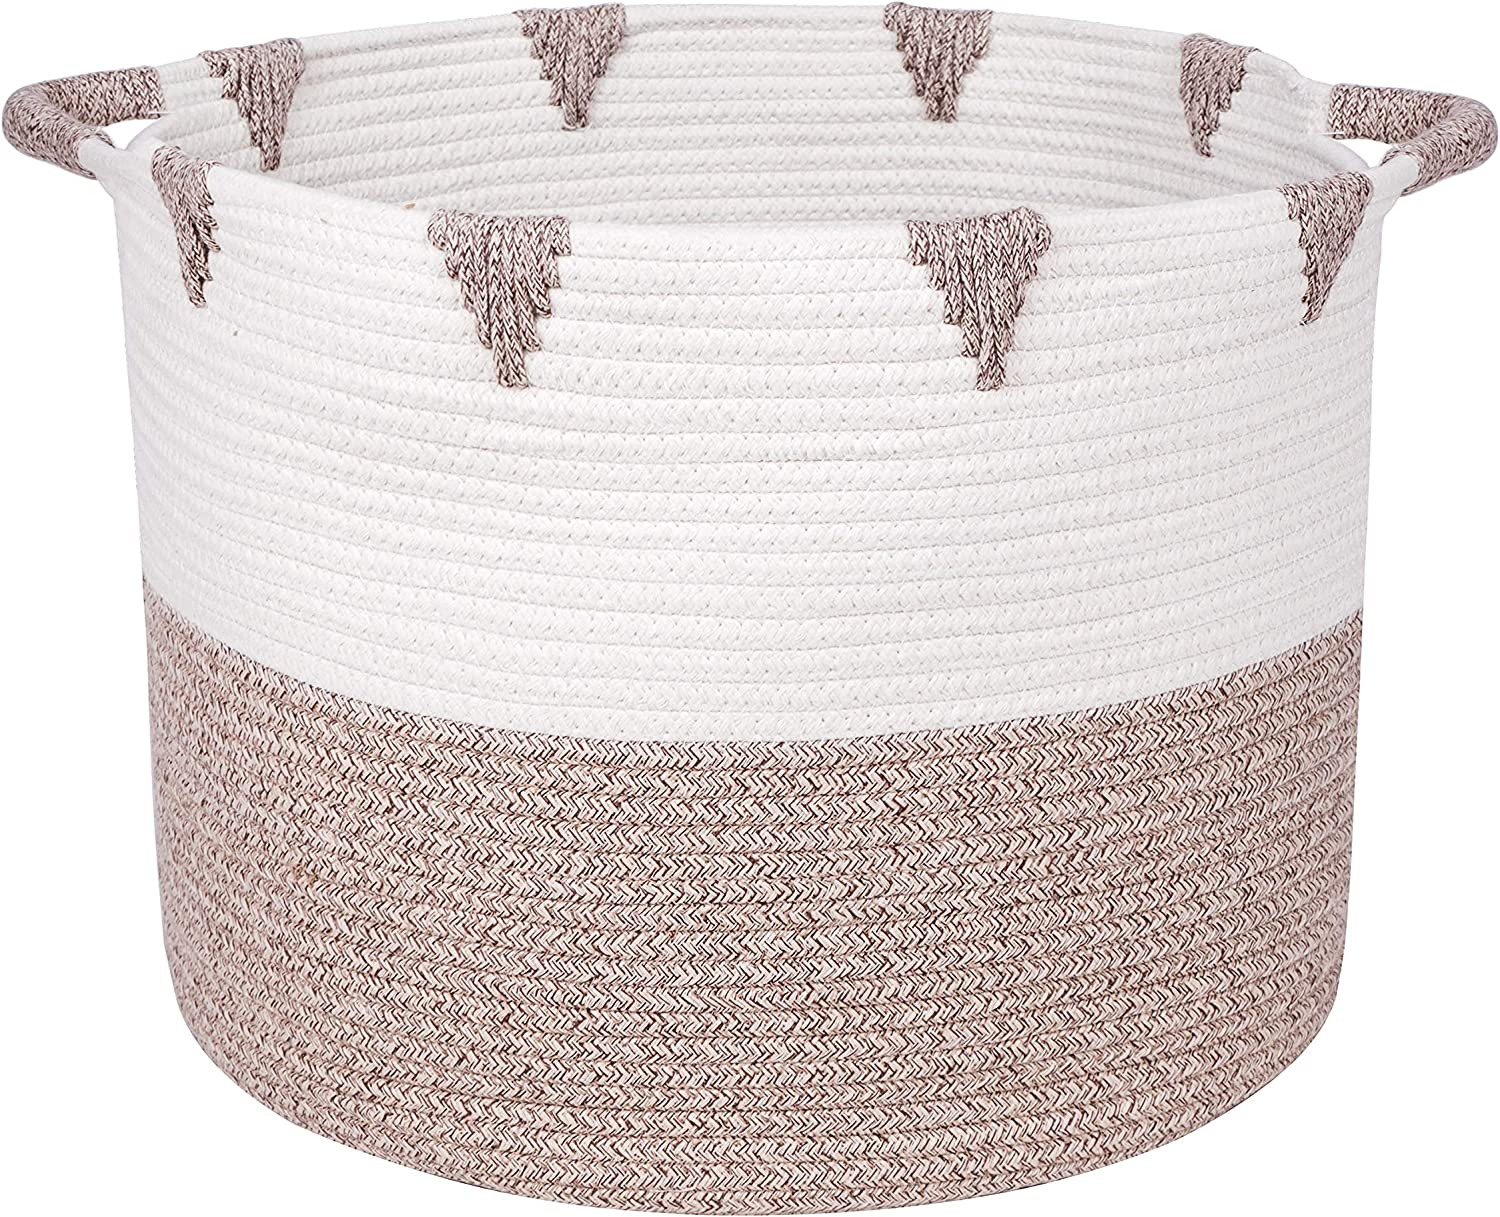 We Care Vida Storage Baskets - Woven Basket Made from Natural Cotton Rope - Baby Laundry Basket with Handle - Decorative Hamper - Perfect Blanket Basket for Your Living Room - Great Gift Decorations